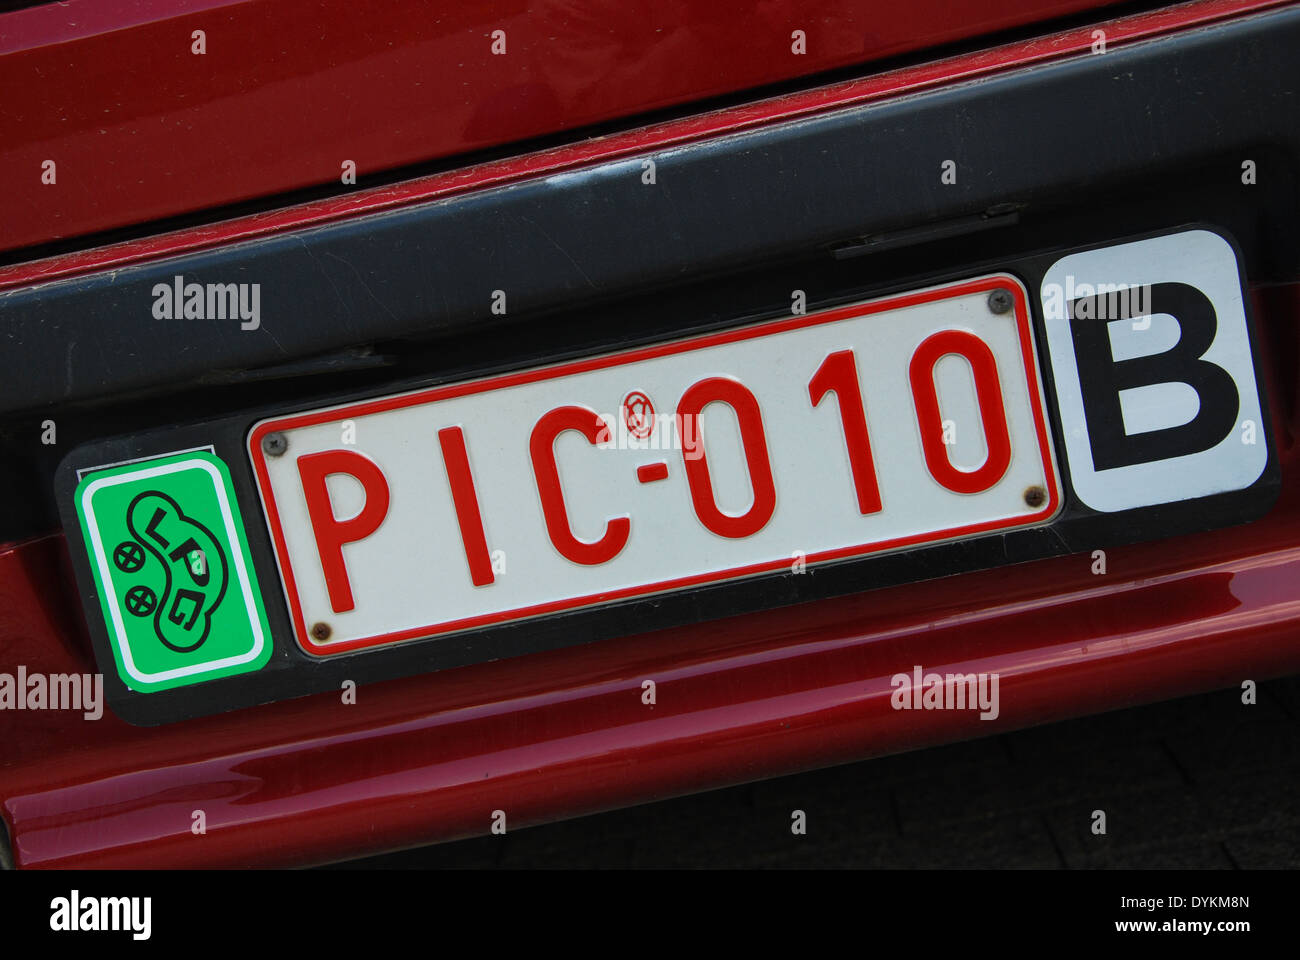 Posh English Words Funny Licence Plate On Belgian Car Stock Photo 68659829